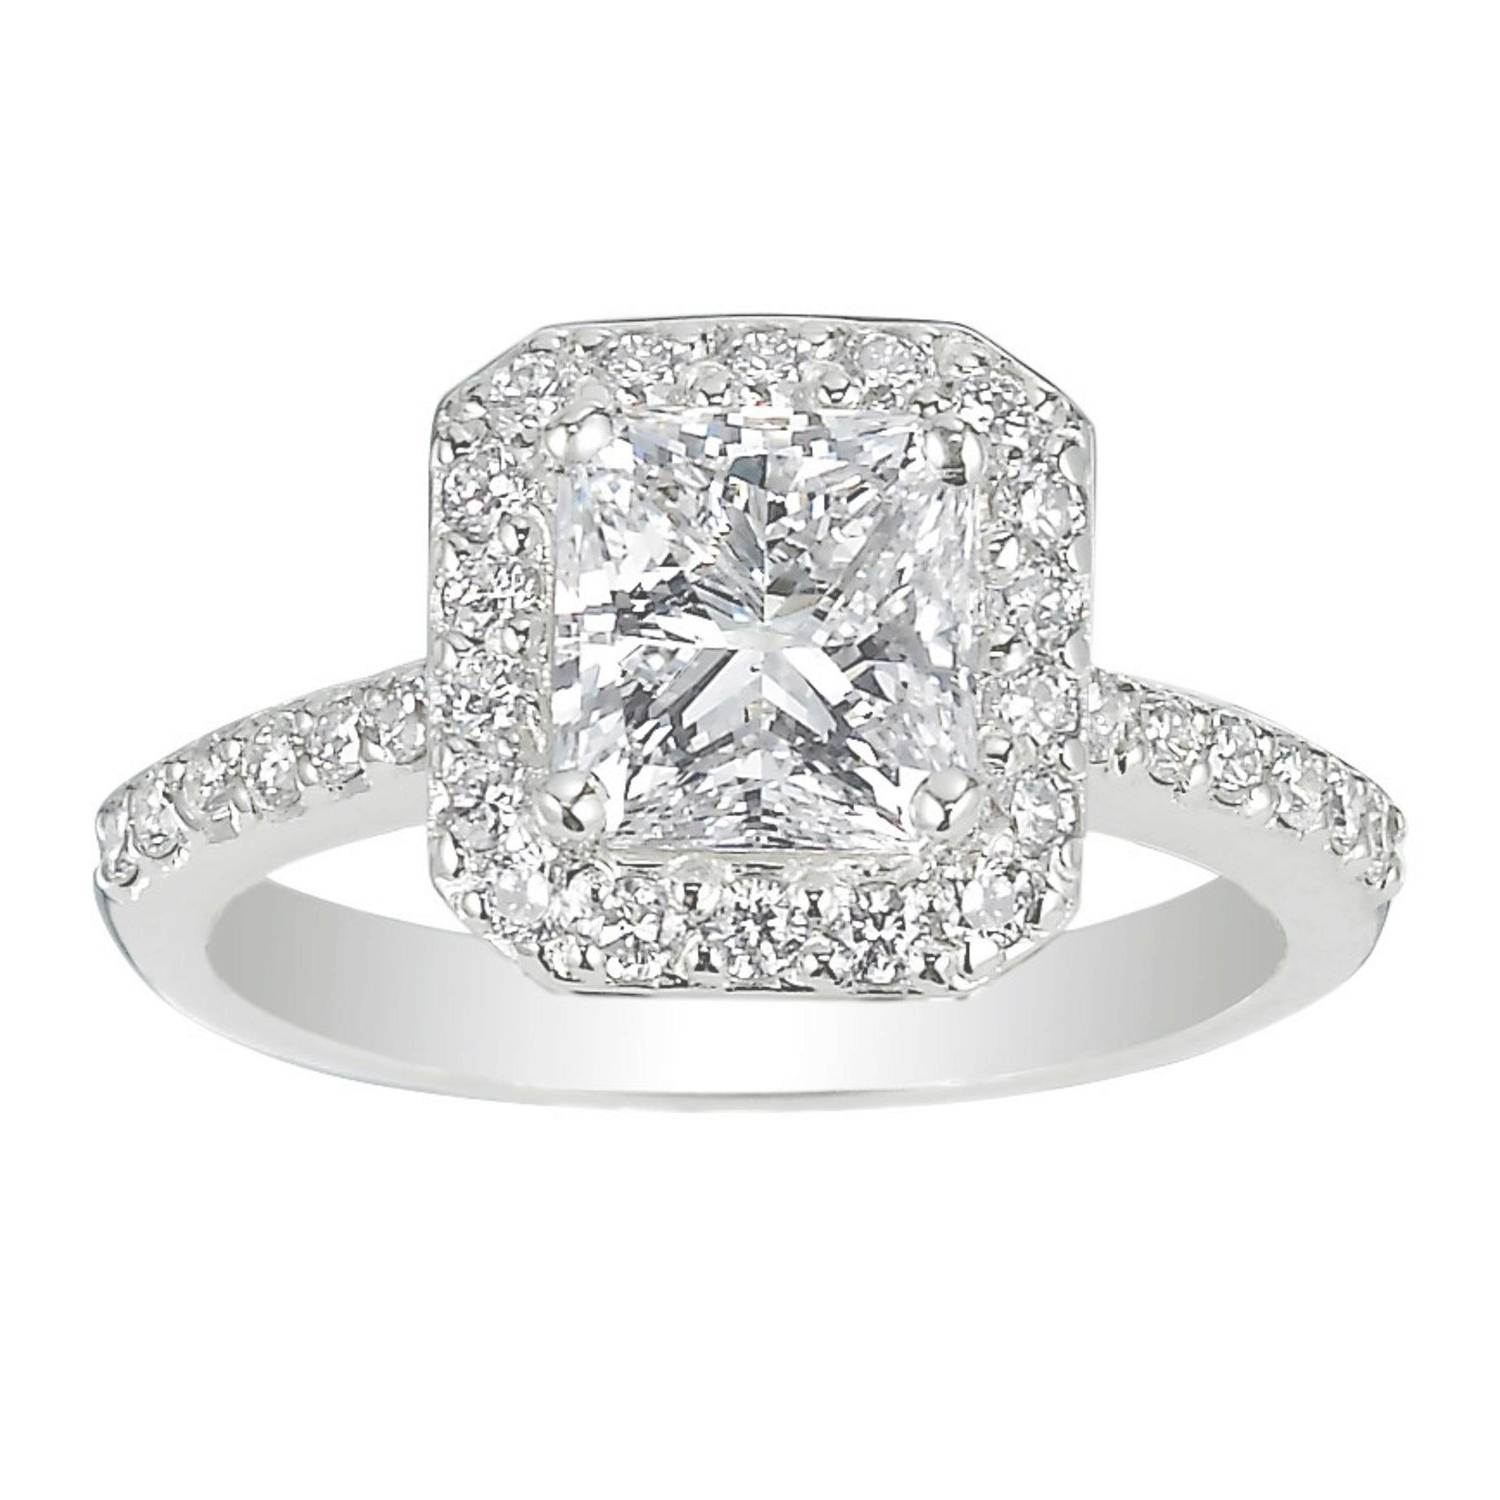 dollar archive ring gawk at hollywood carat best diamond engagement rings million to cut cushion vergara seven sofia home